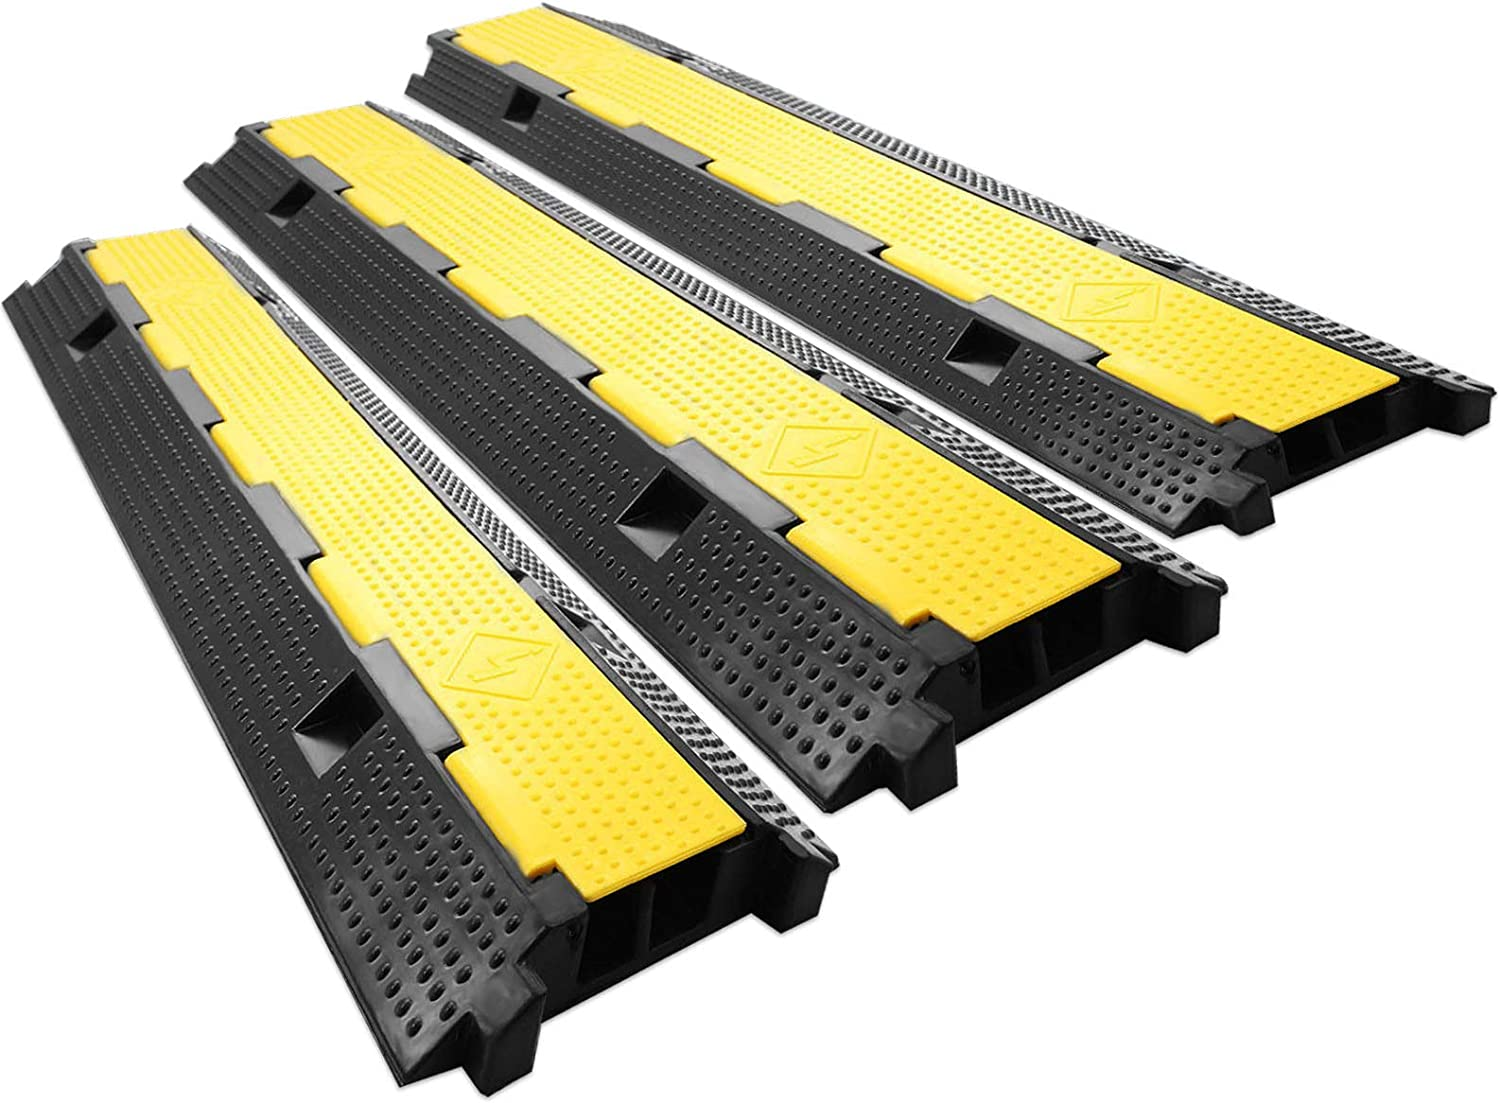 BLTPress 3 Pack Speed Bump 11000LBS Capacity 2 Channel Cable Protector Heavy Duty Traffic Wire and Hose Cable Ramps